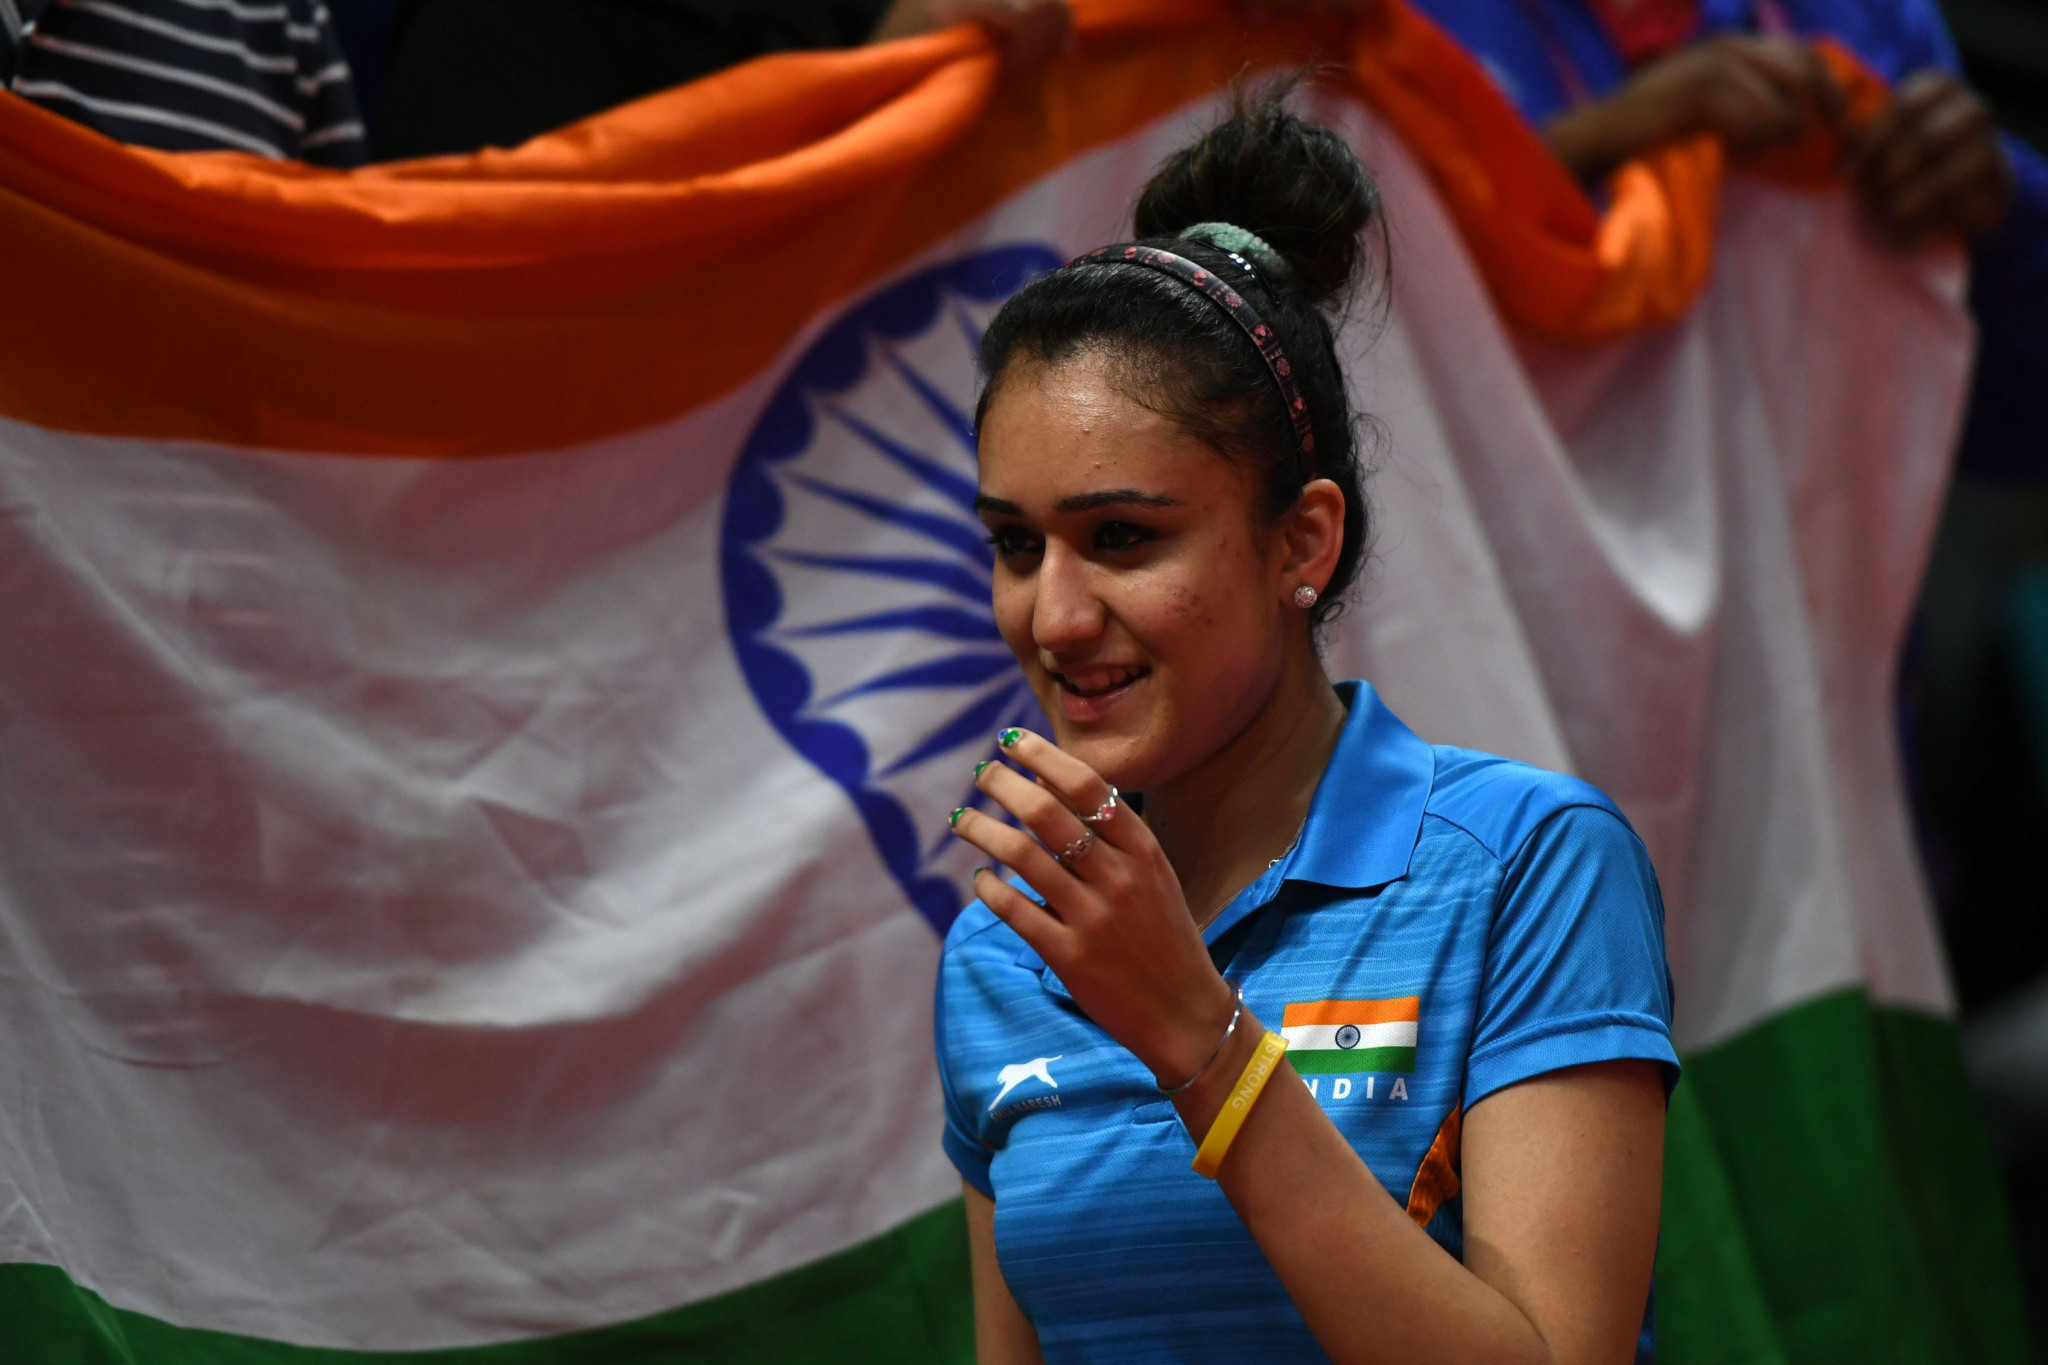 Manika Batra became the first Indian to win the women's singles gold medal at the Commonwealth Games ©Getty Images